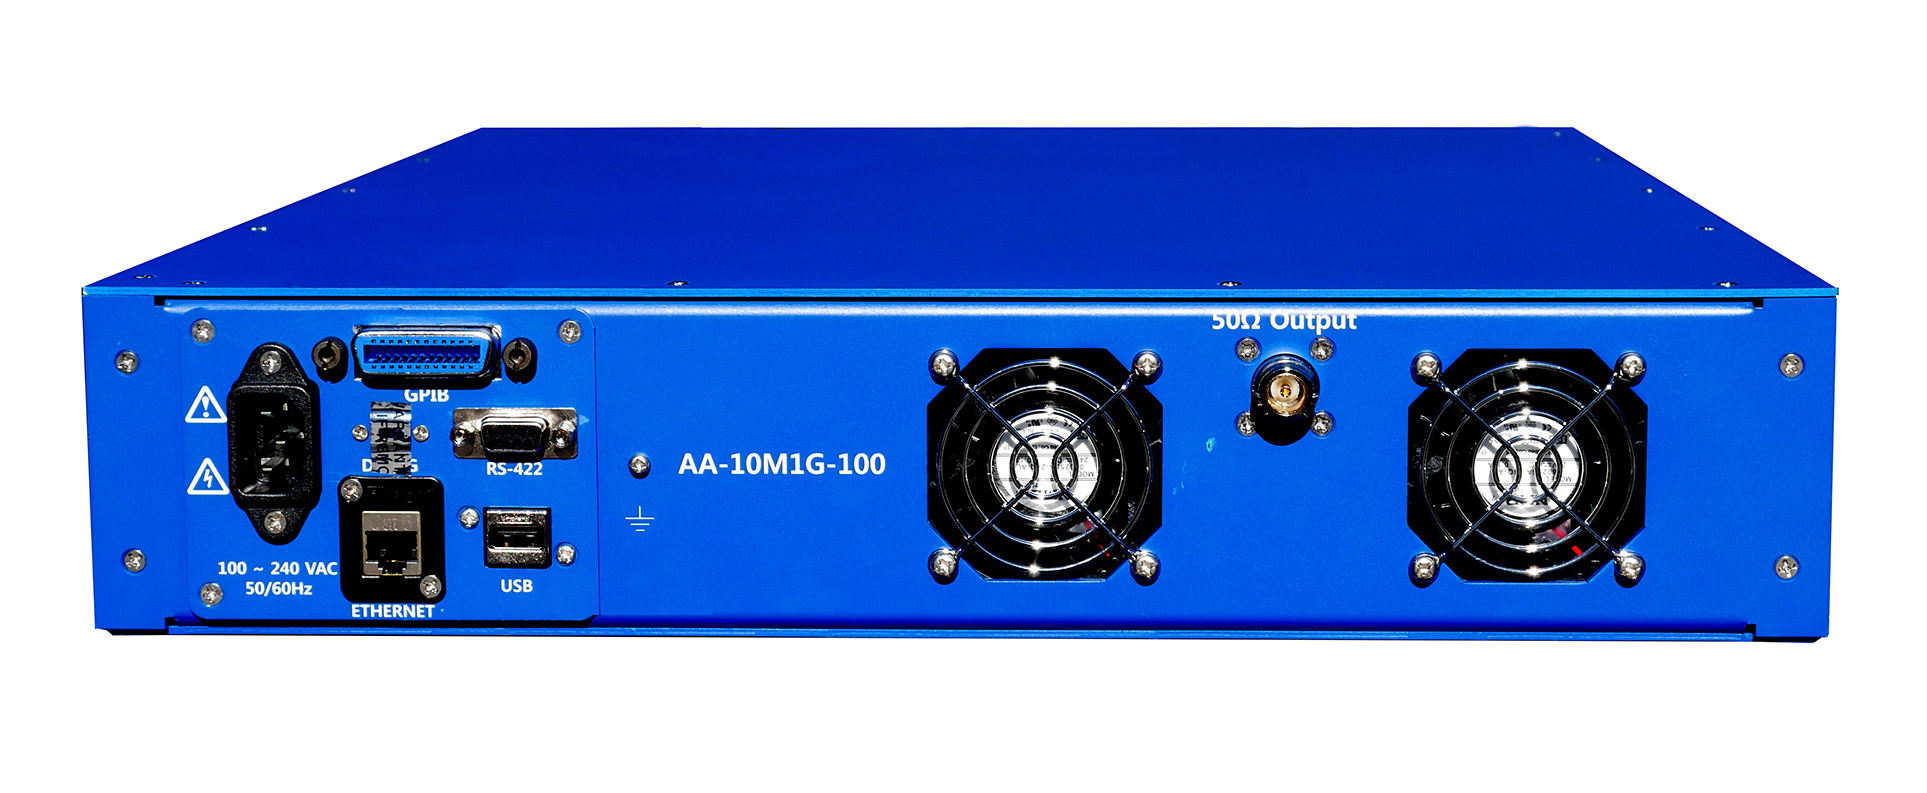 Advanced Amplifiers AA-10M1G-100 Solid State Amplifier | 10 - 1000MHz, 100W